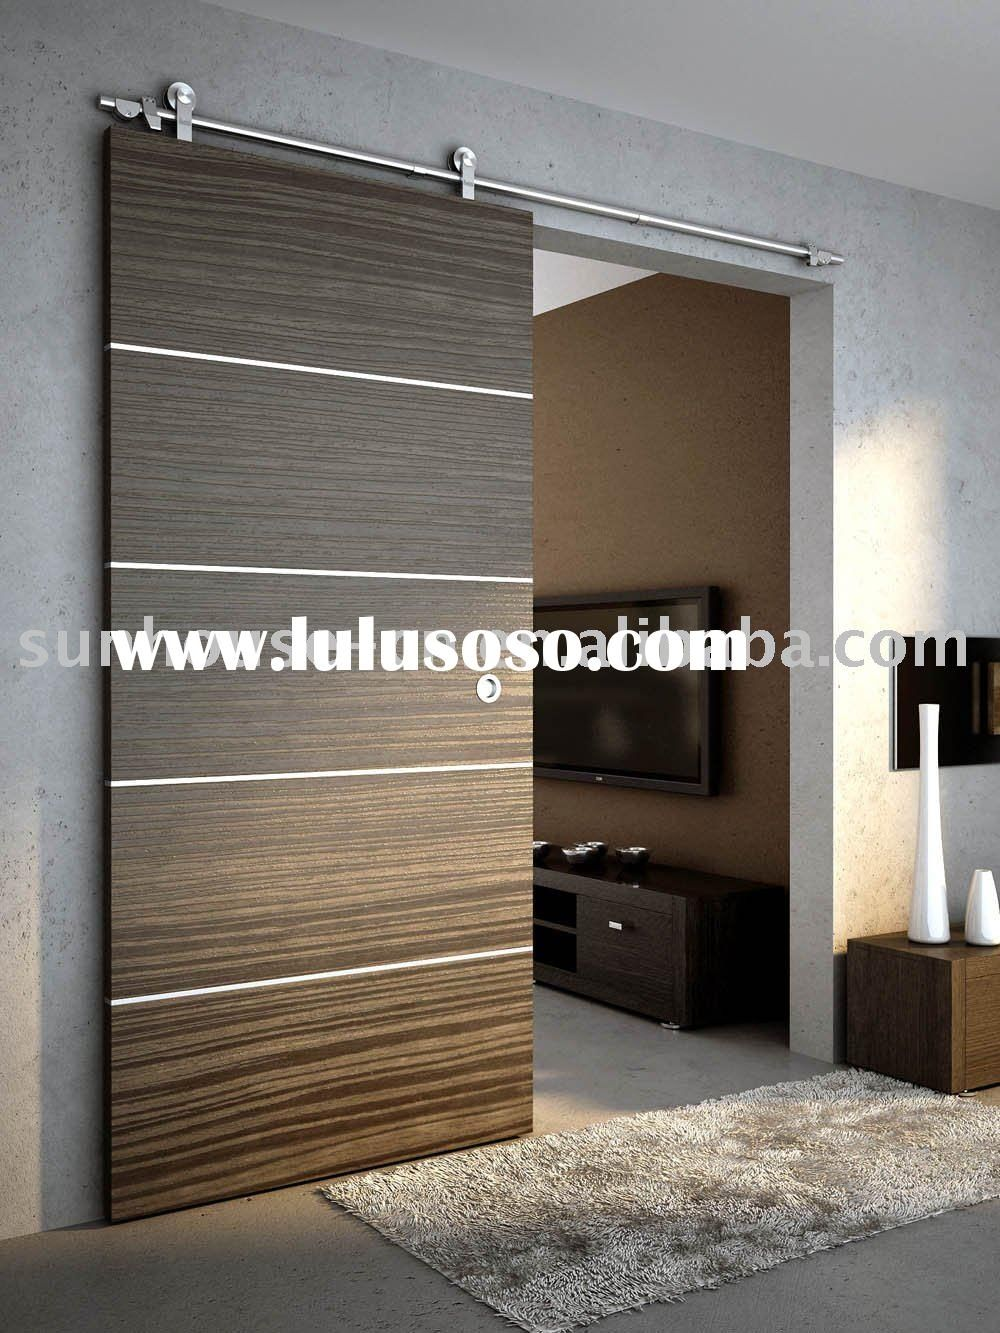 Wood sliding doors - Wood Sliding Door Sliding Door Fitting